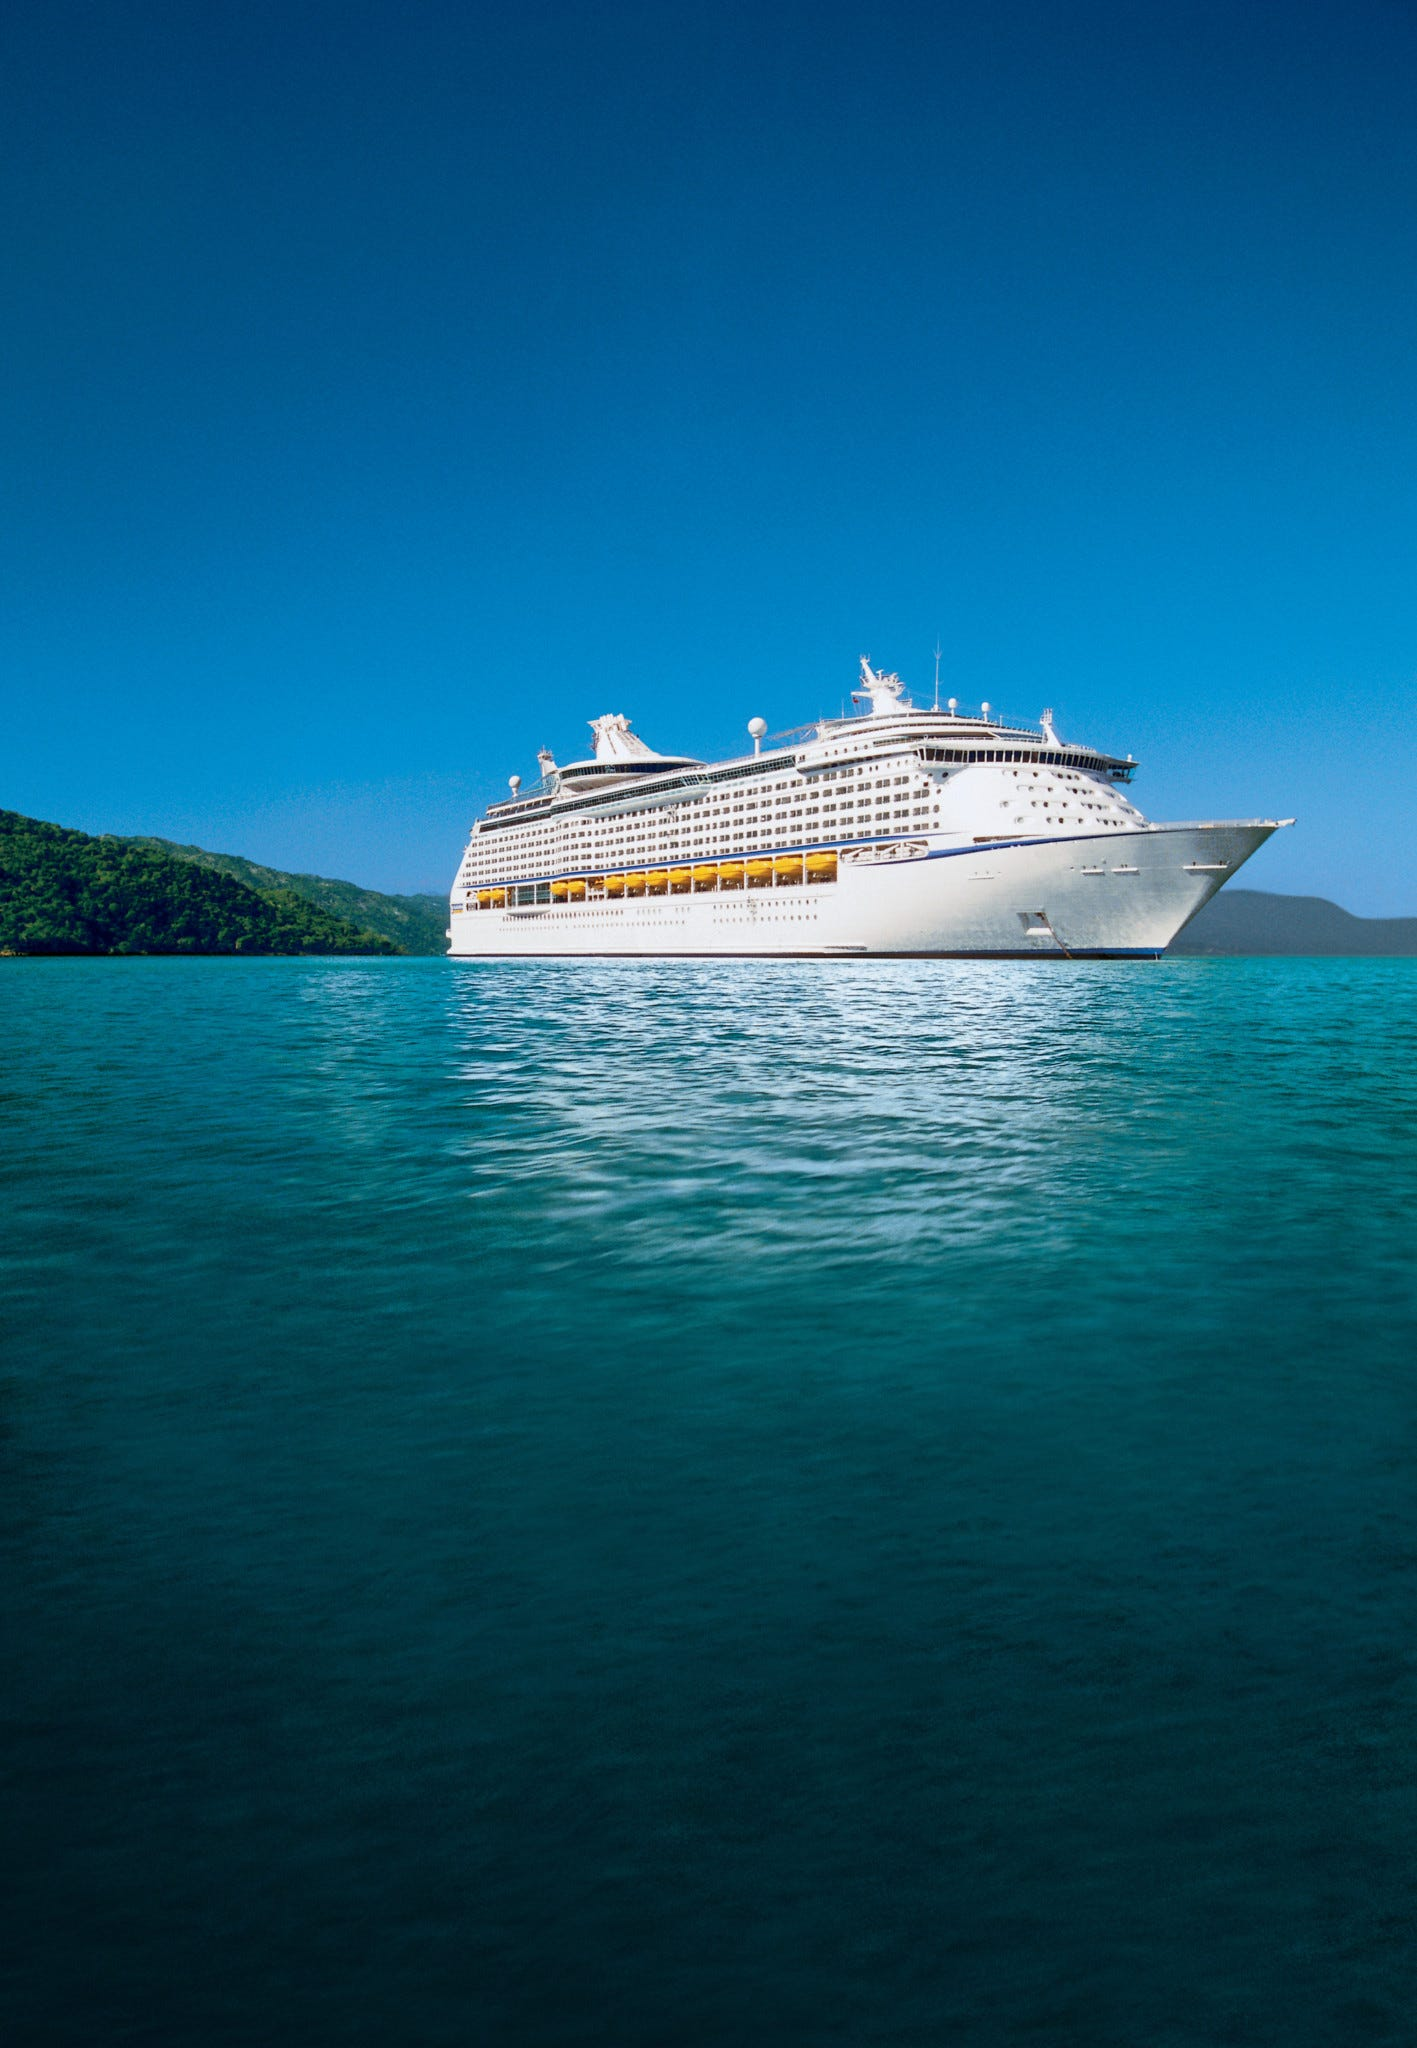 Royal Caribbean is first cruise line to receive CDC approval for a test sailing in US waters